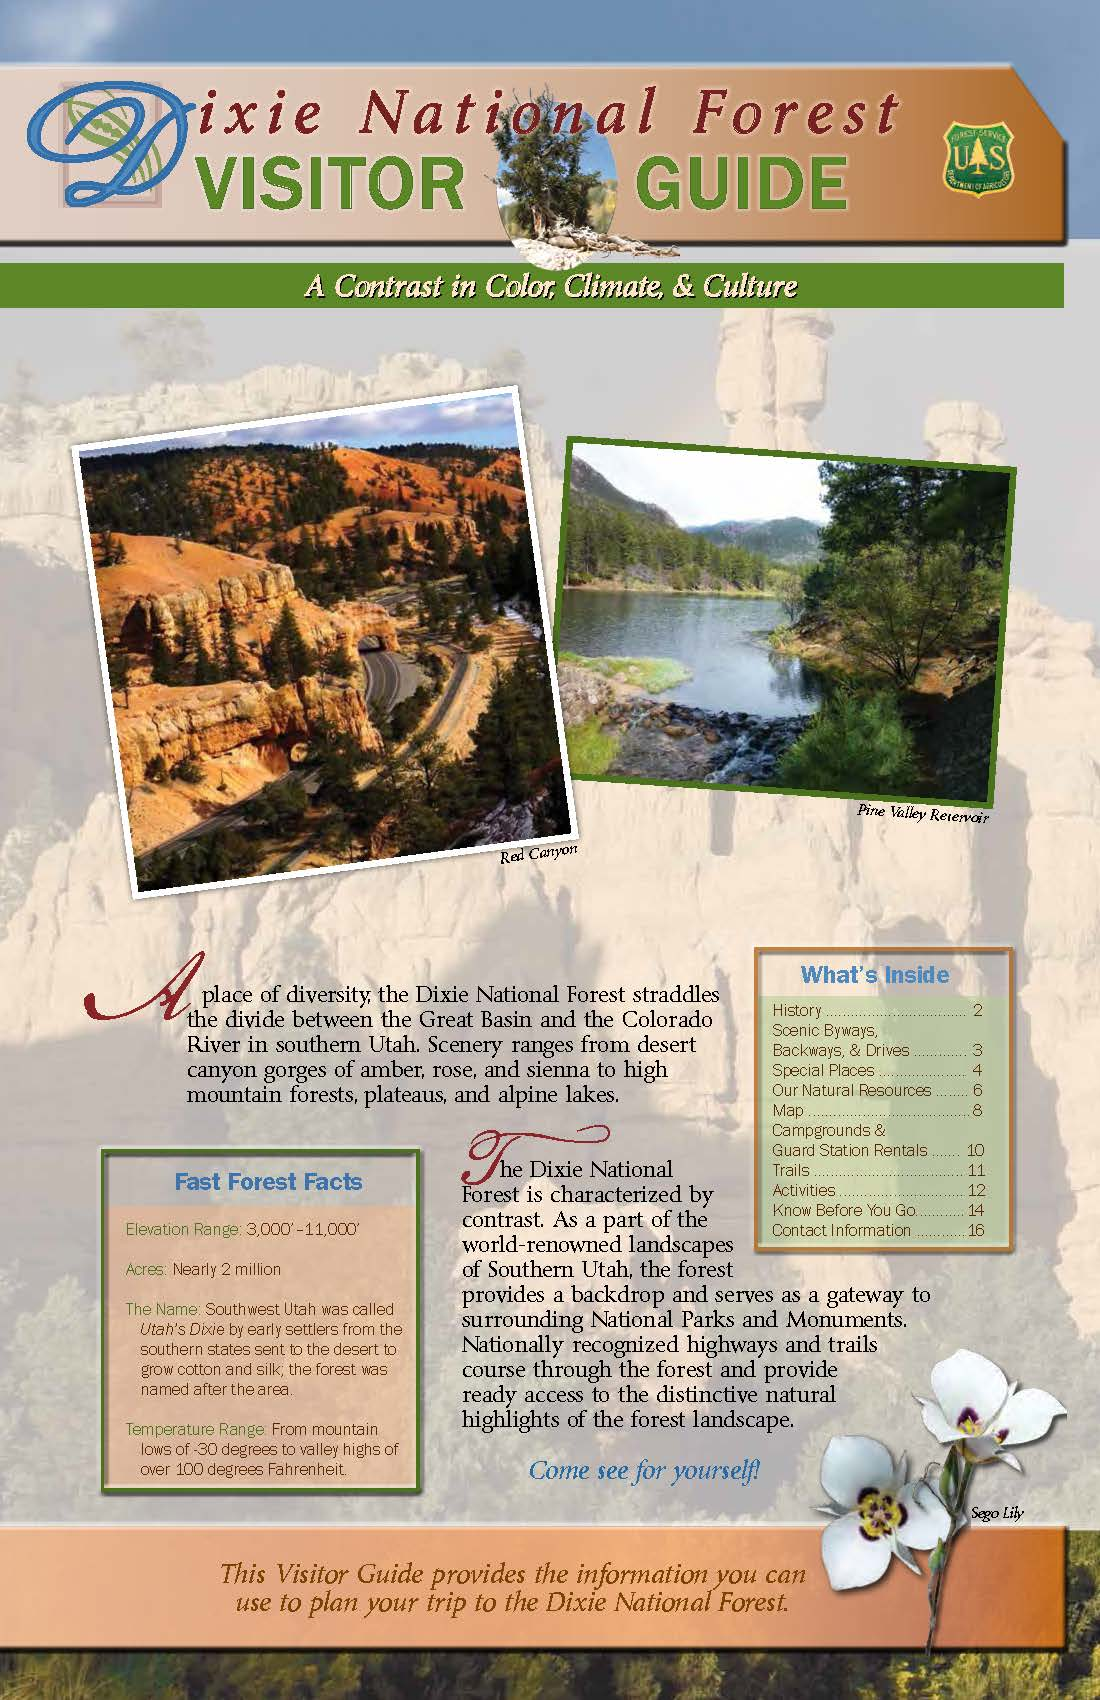 Dixie National Forest Visitor Guide 2015